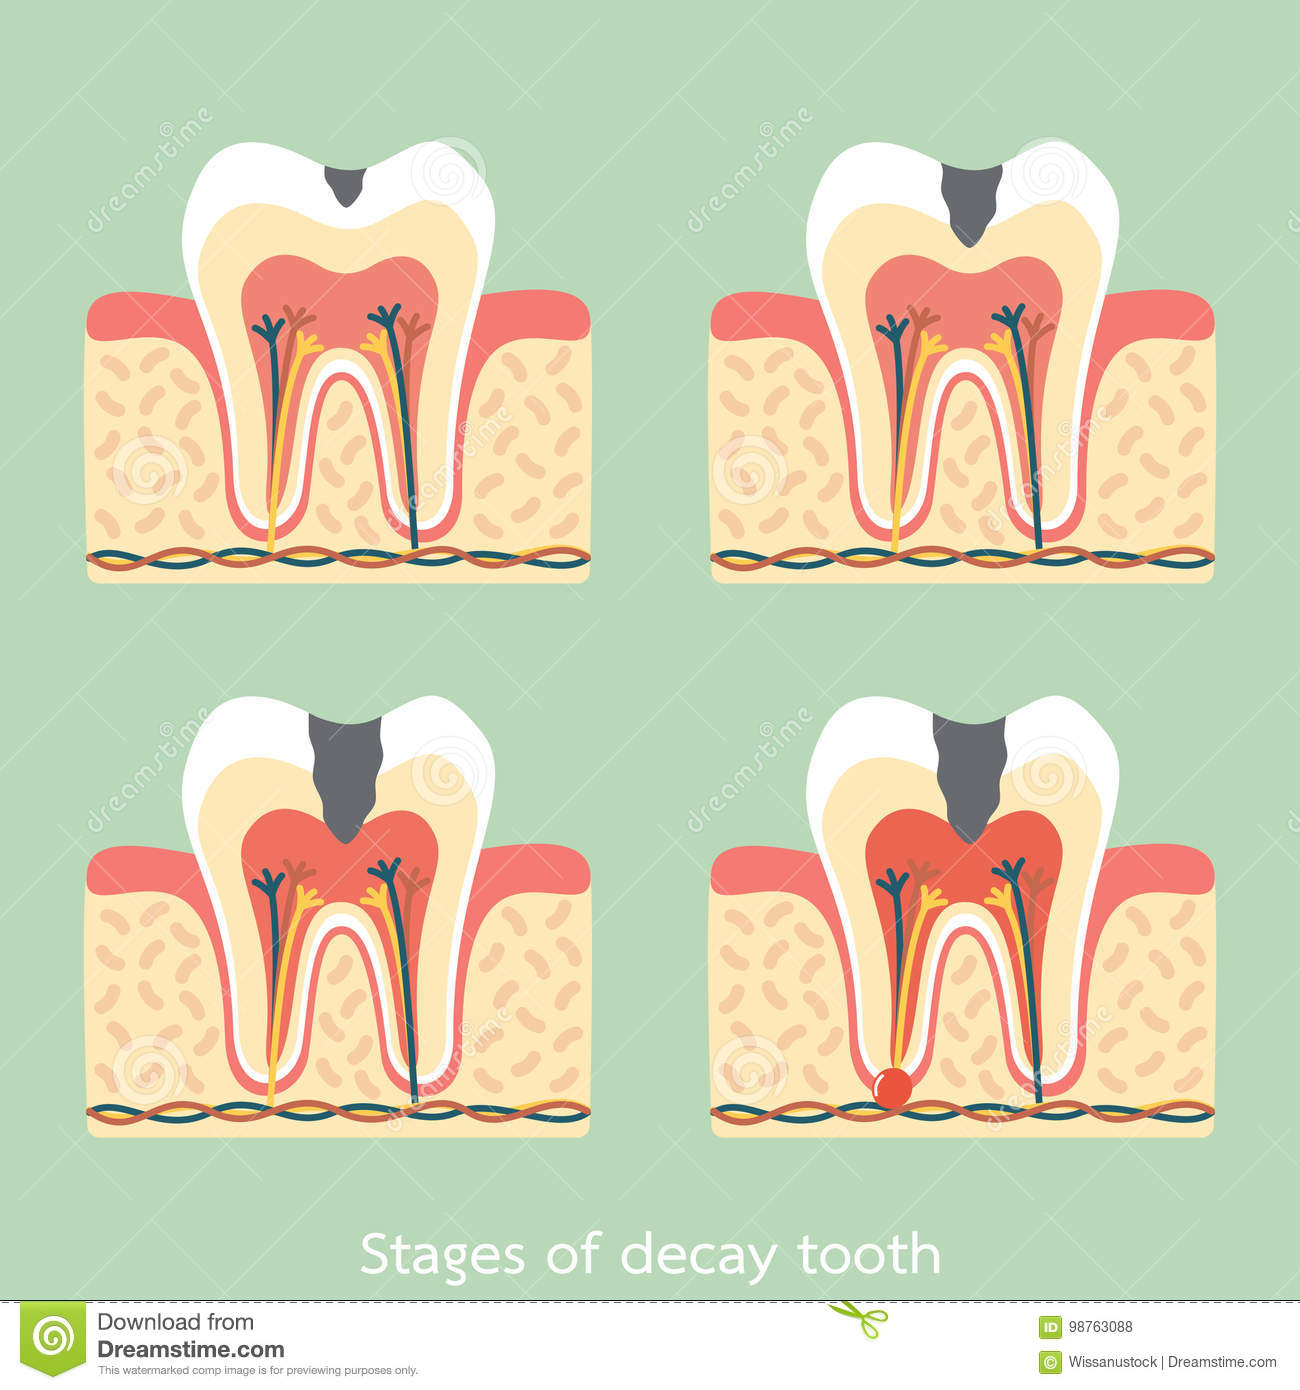 Stages Of Decay Tooth Anatomy Structure Including The Bone